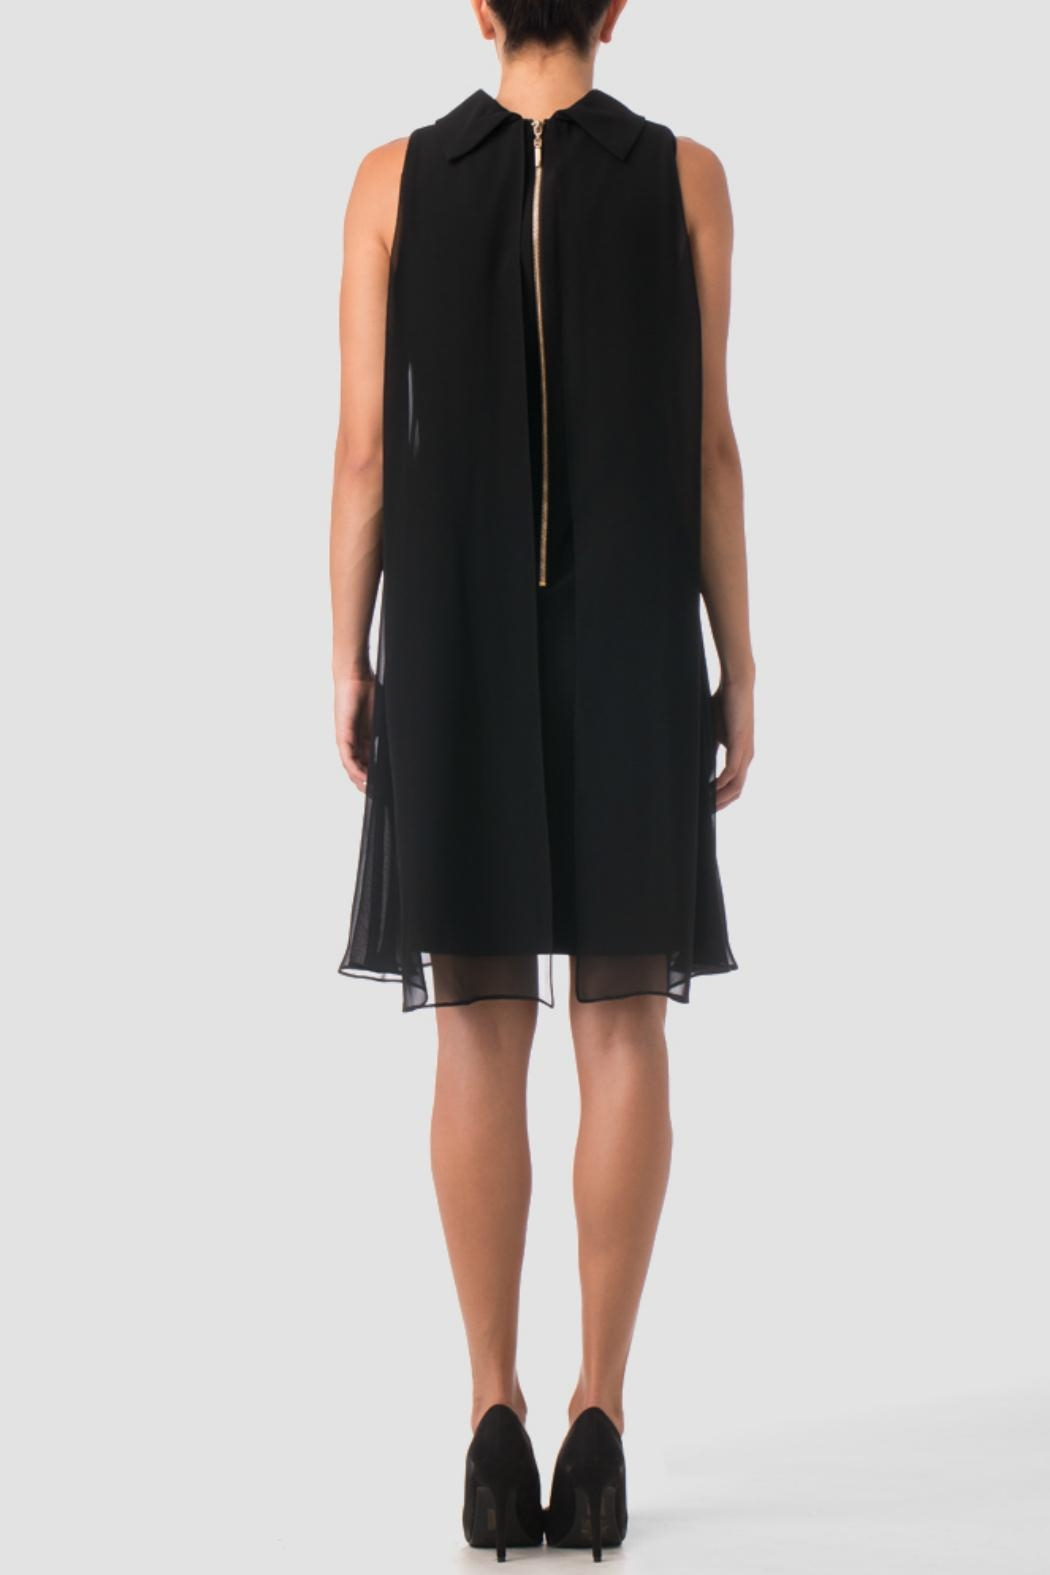 Joseph Ribkoff Black Shift Dress - Front Full Image